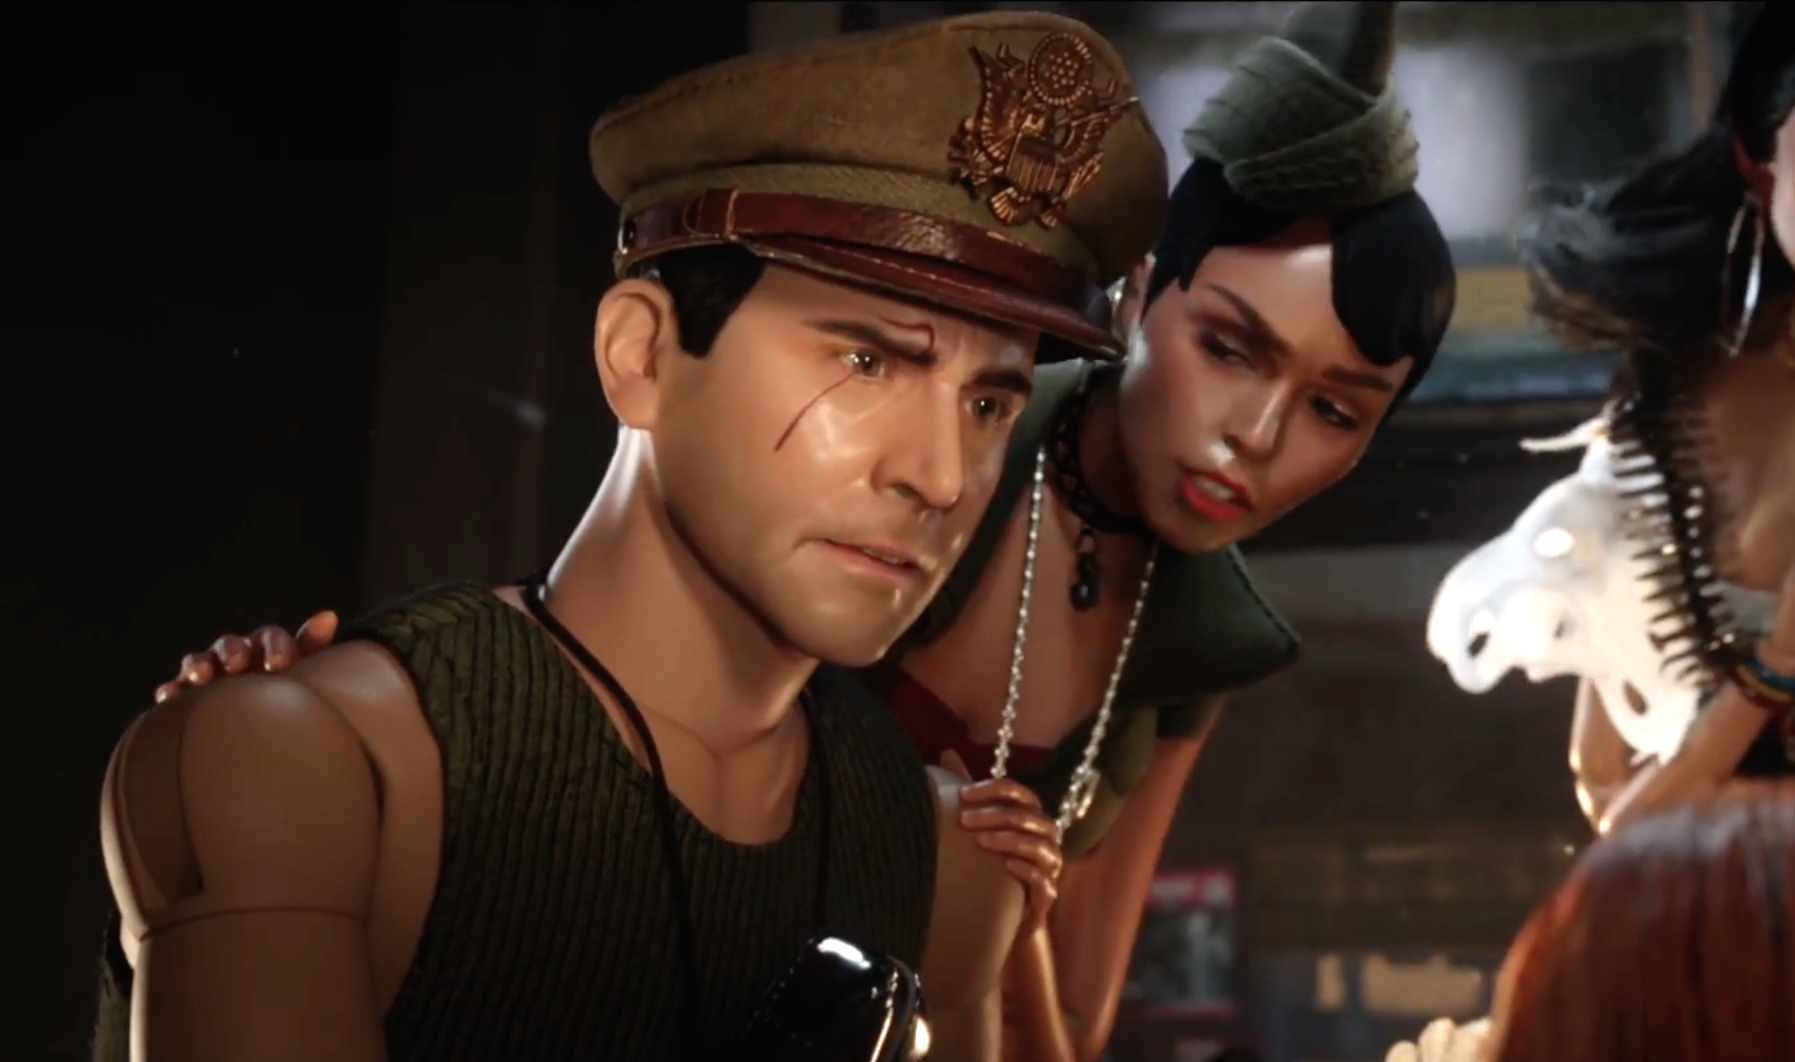 Trailer Arrives For Welcome to Marwen